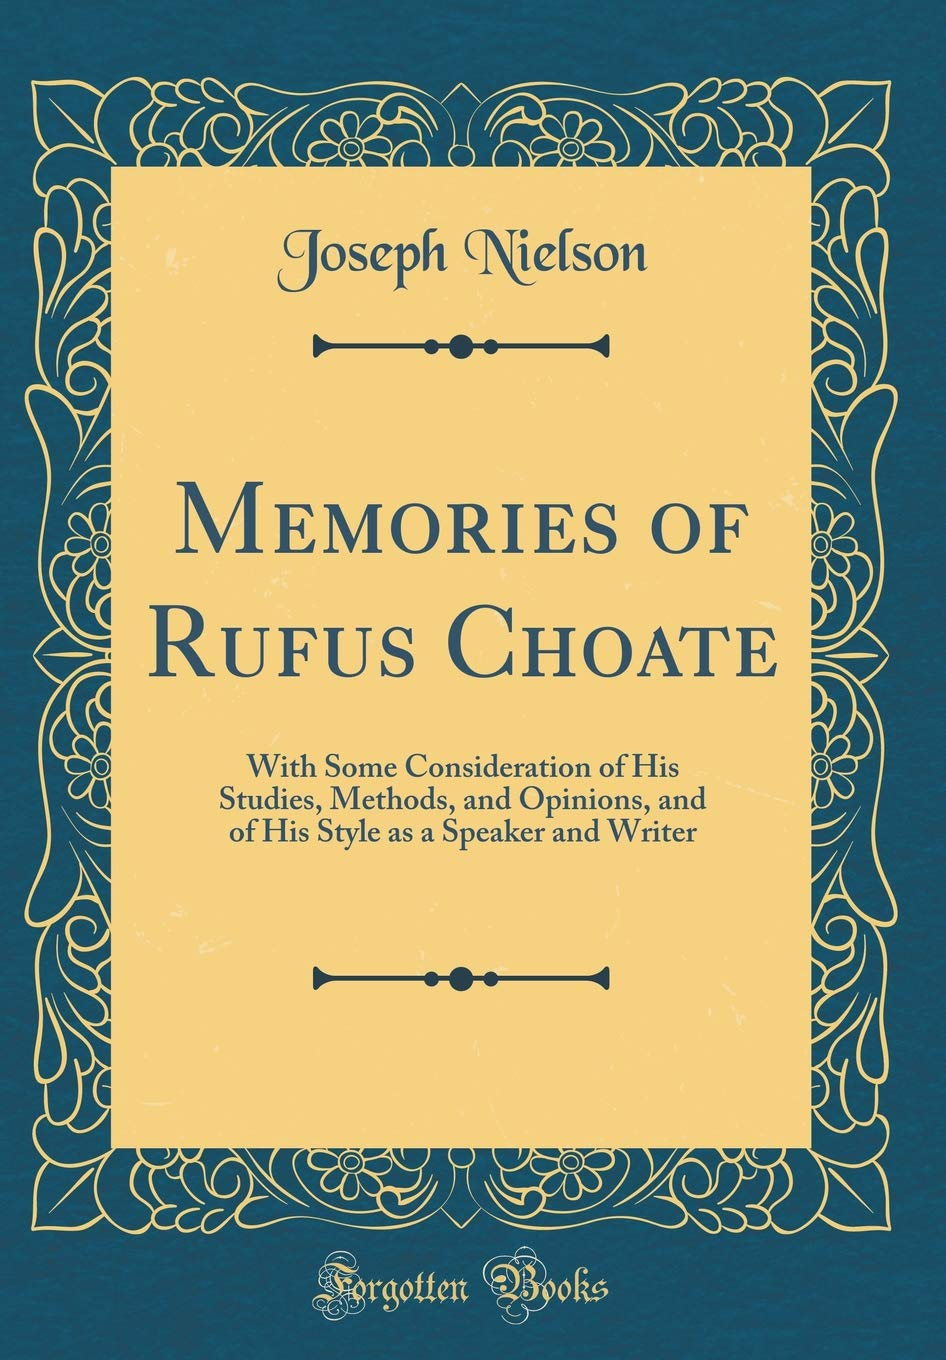 Download Memories of Rufus Choate: With Some Consideration of His Studies, Methods, and Opinions, and of His Style as a Speaker and Writer (Classic Reprint) ebook